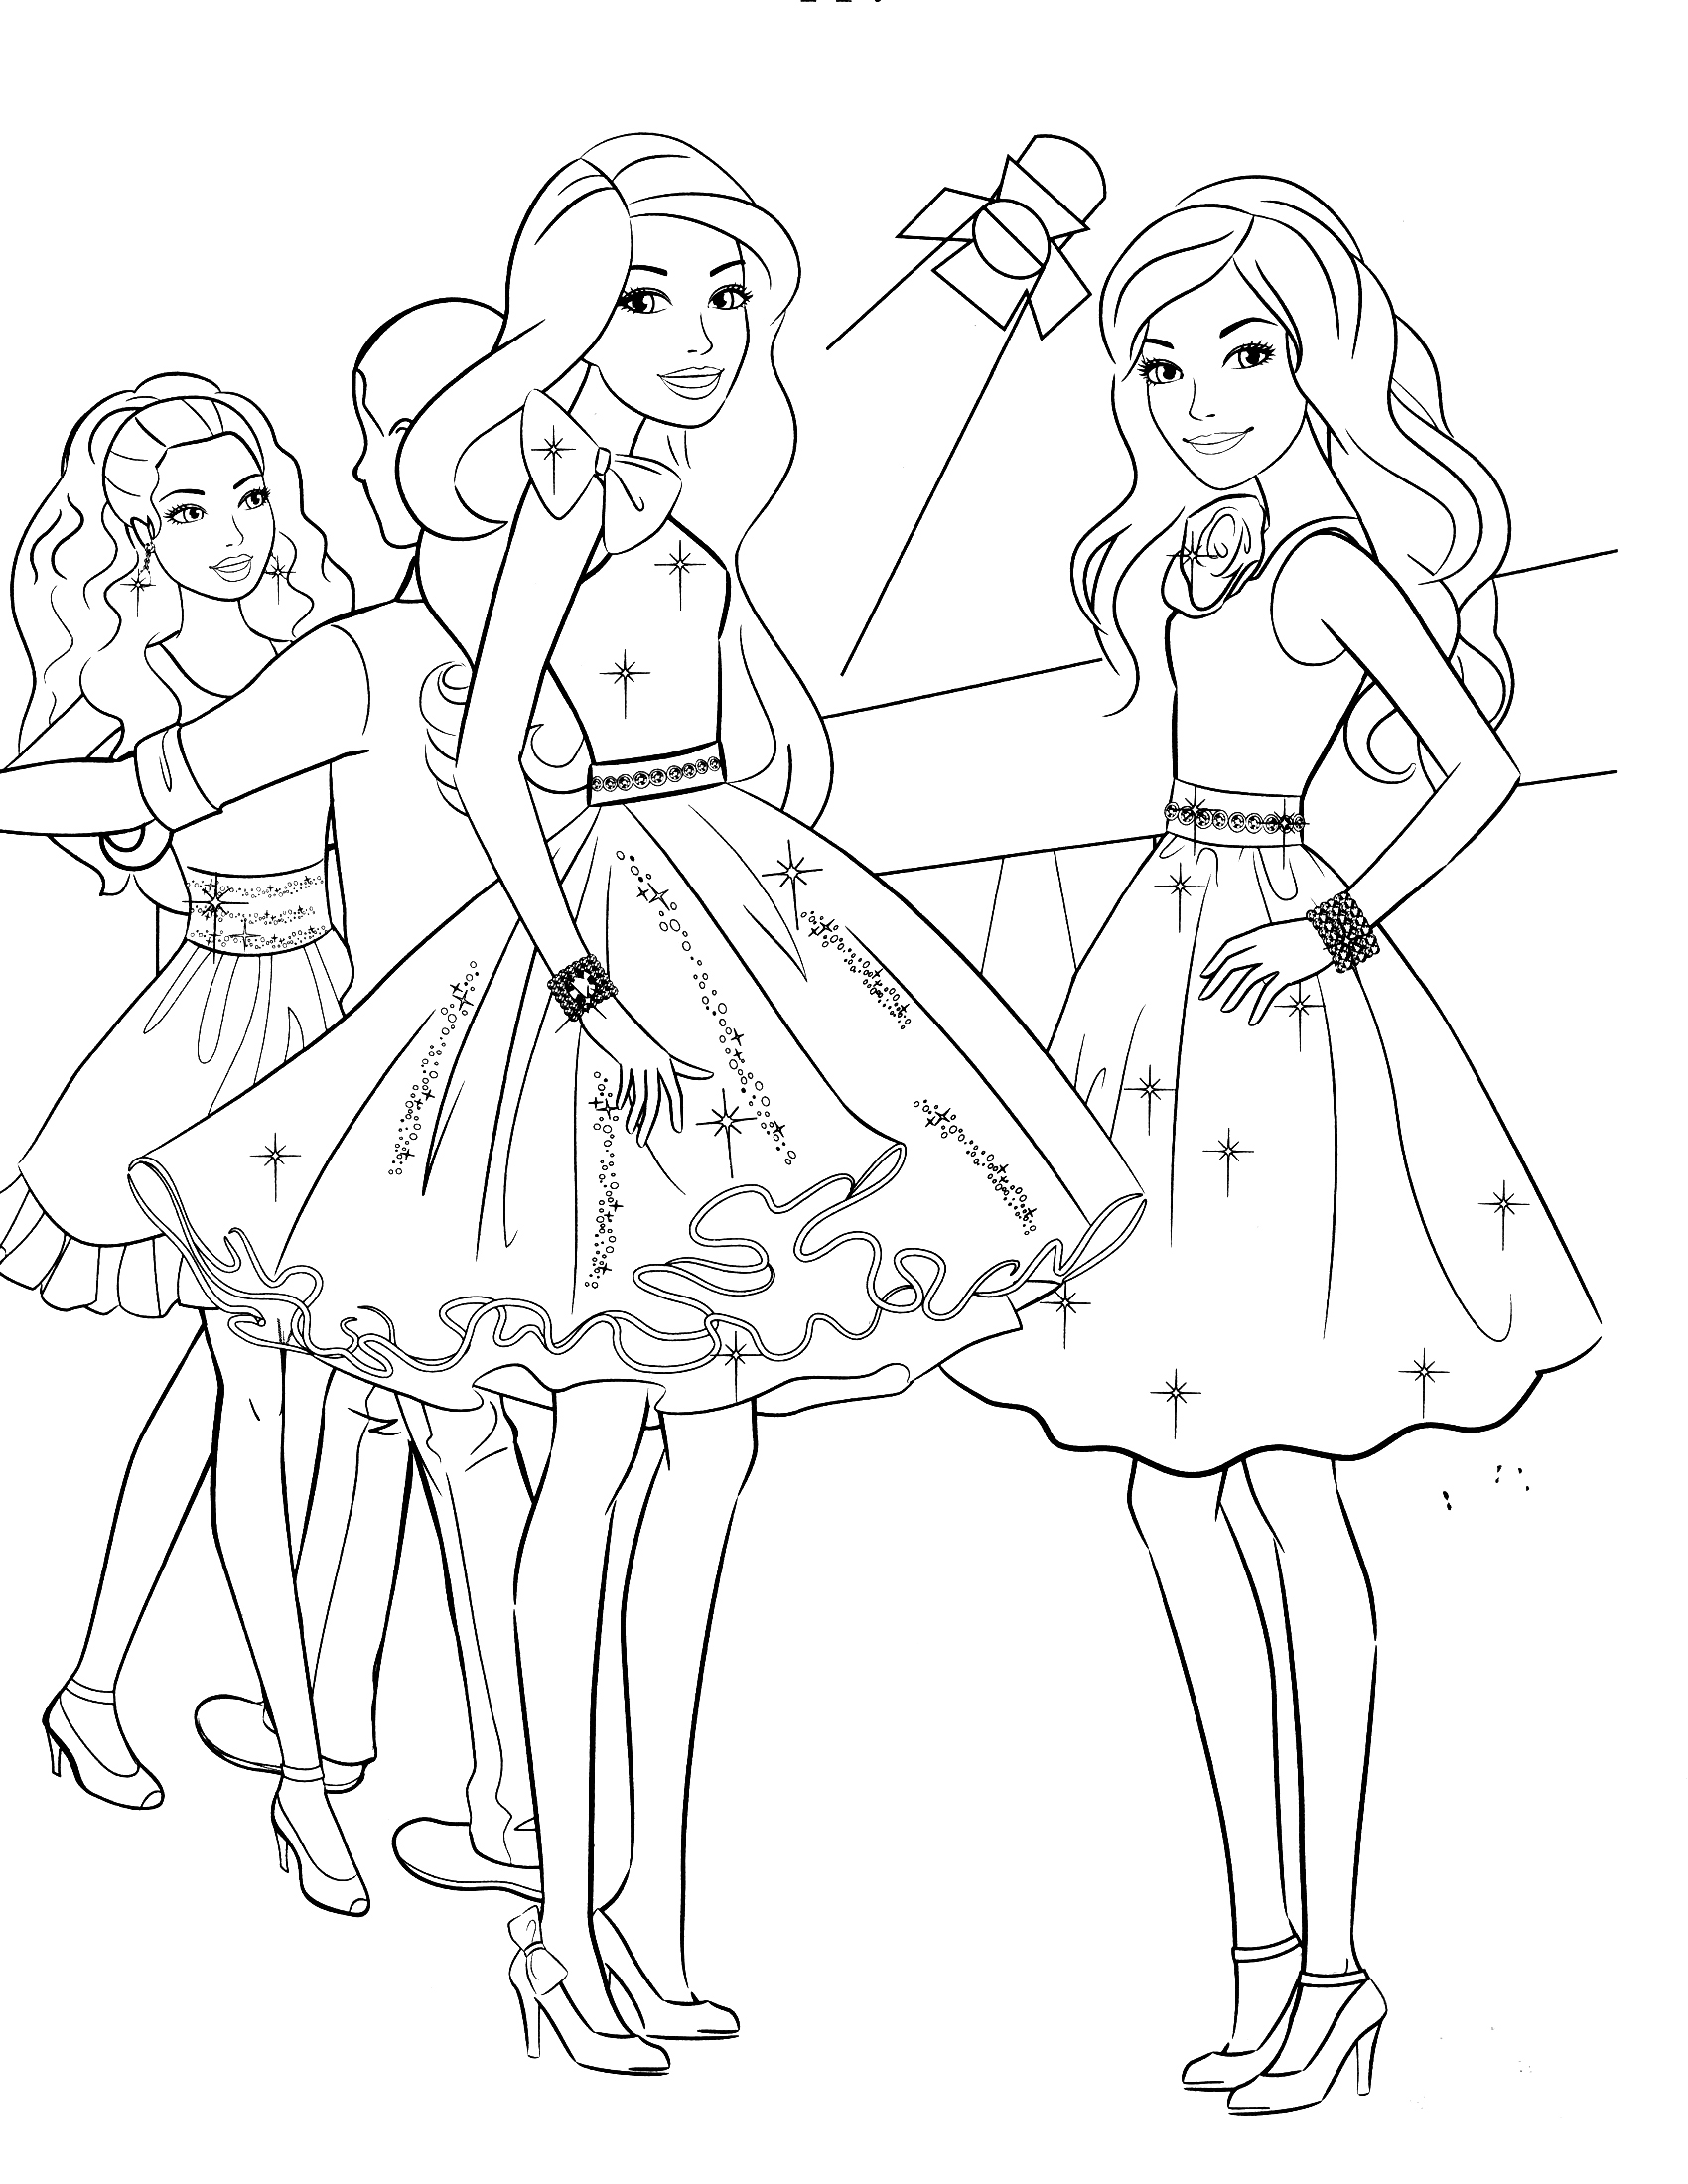 barbie color sheets barbie beach coloring pages at getdrawings free download sheets barbie color